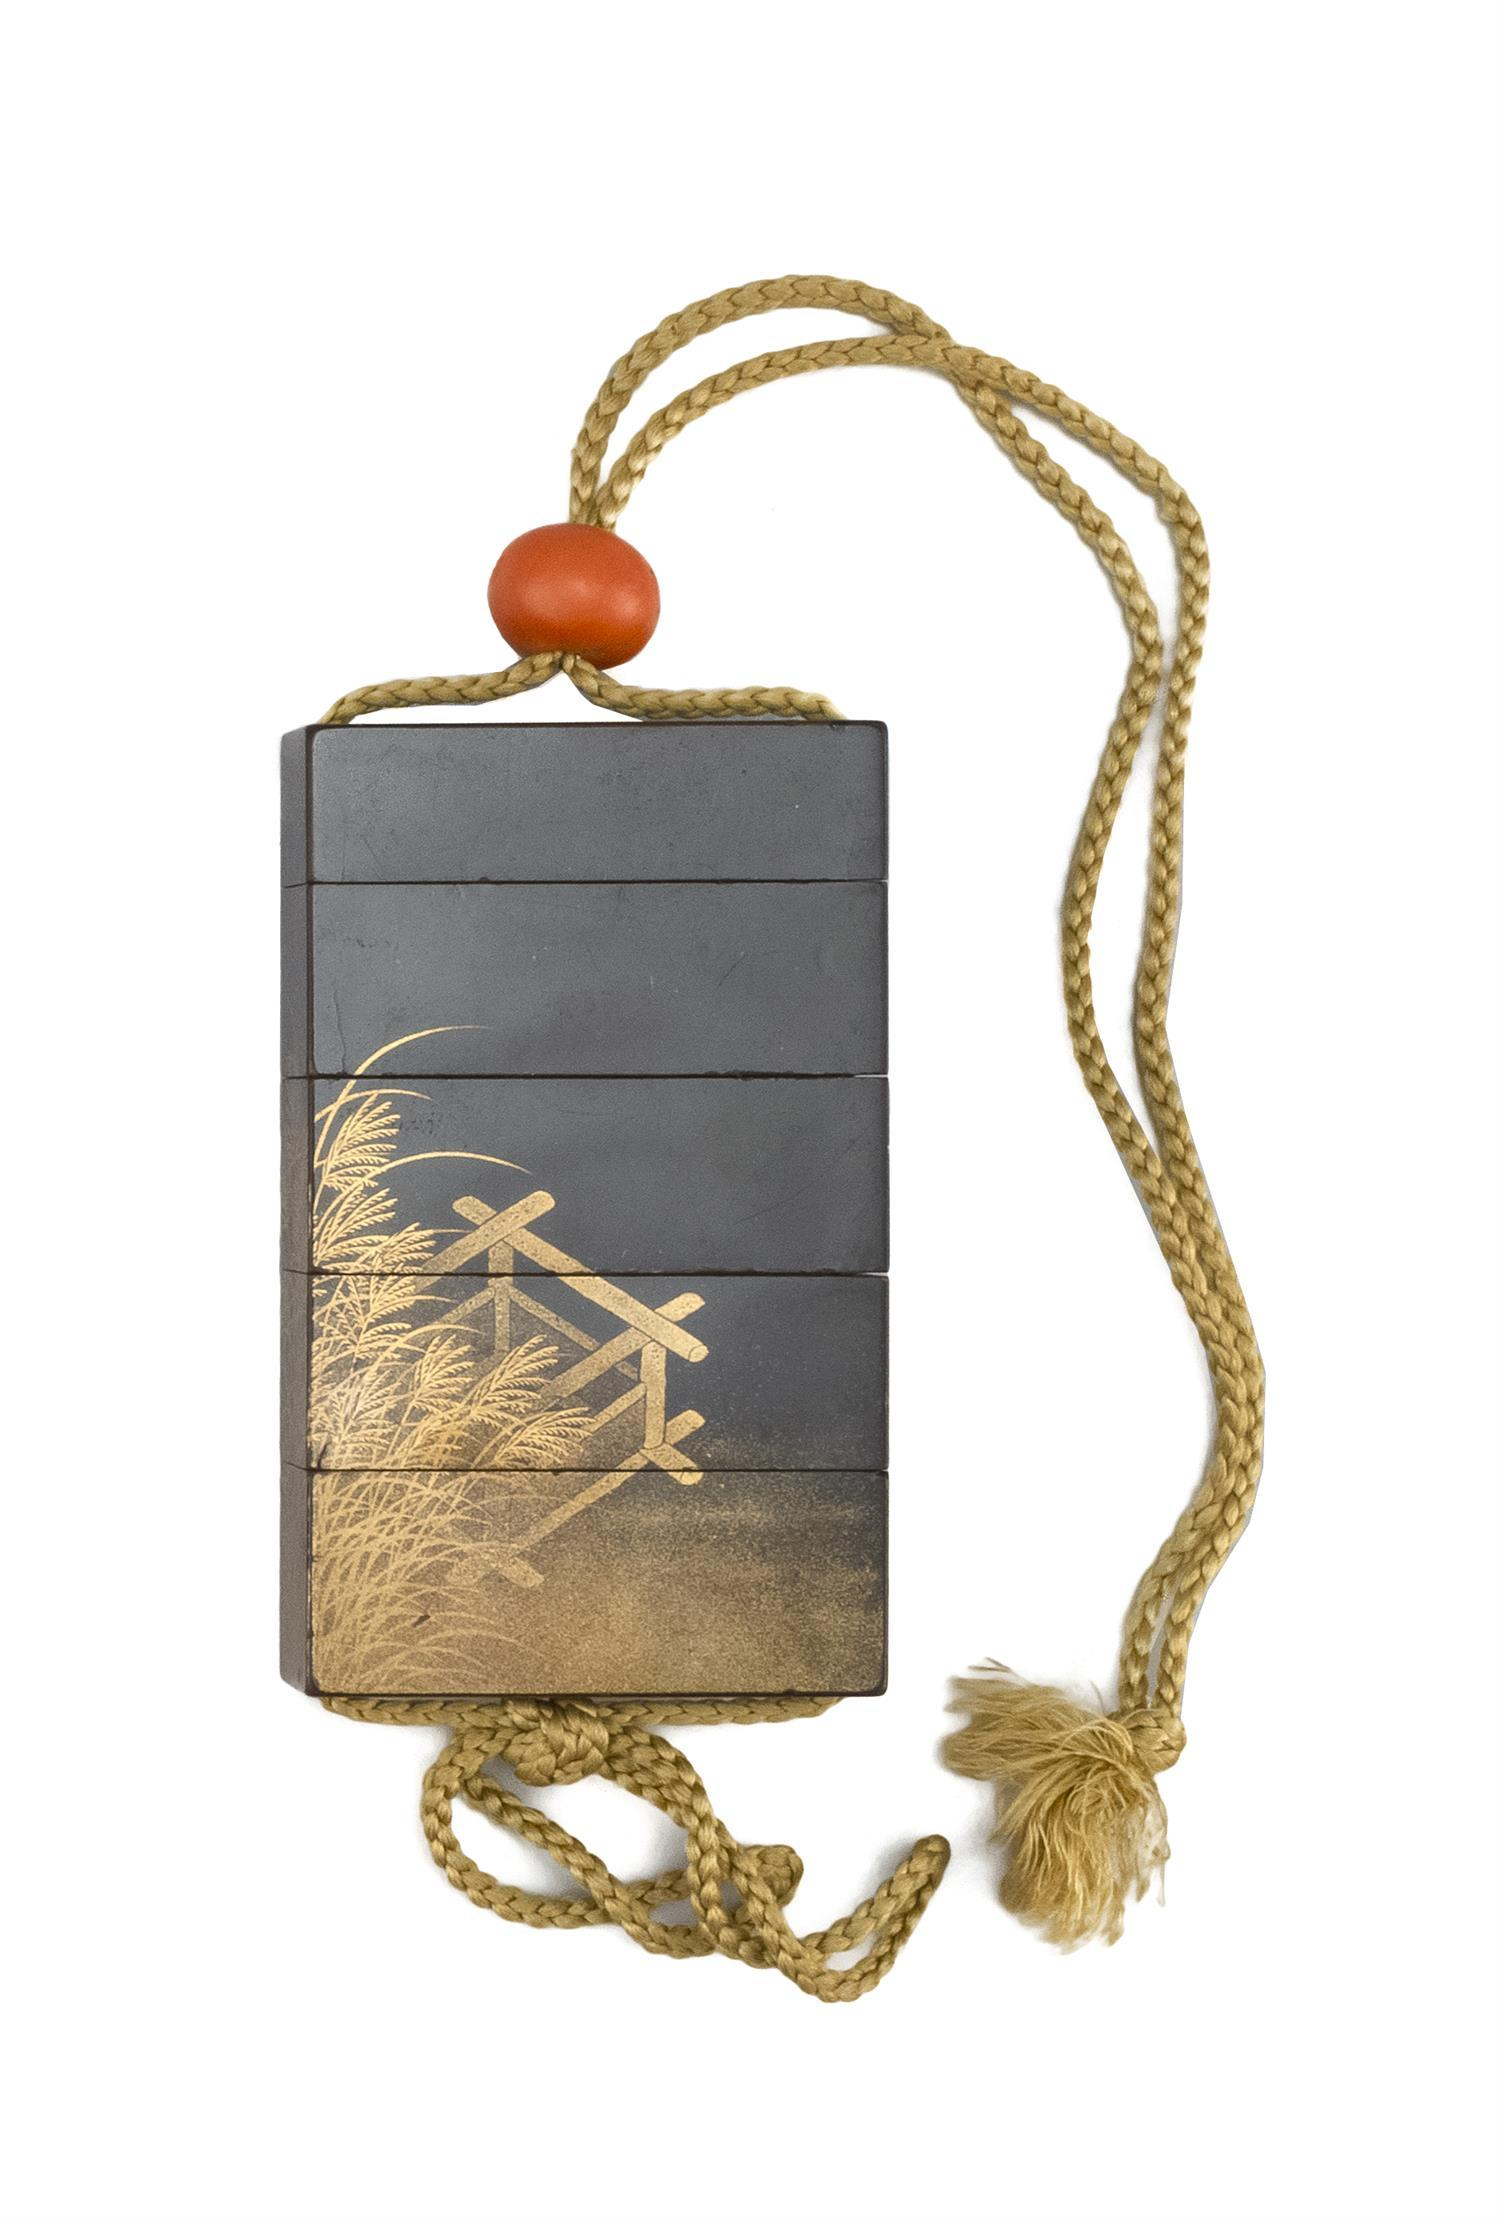 "JAPANESE BLACK AND GOLD LACQUER FOUR-CASE INRO Rectangular, with grasses design. Signed. Length 3.5"". Coral ojime."